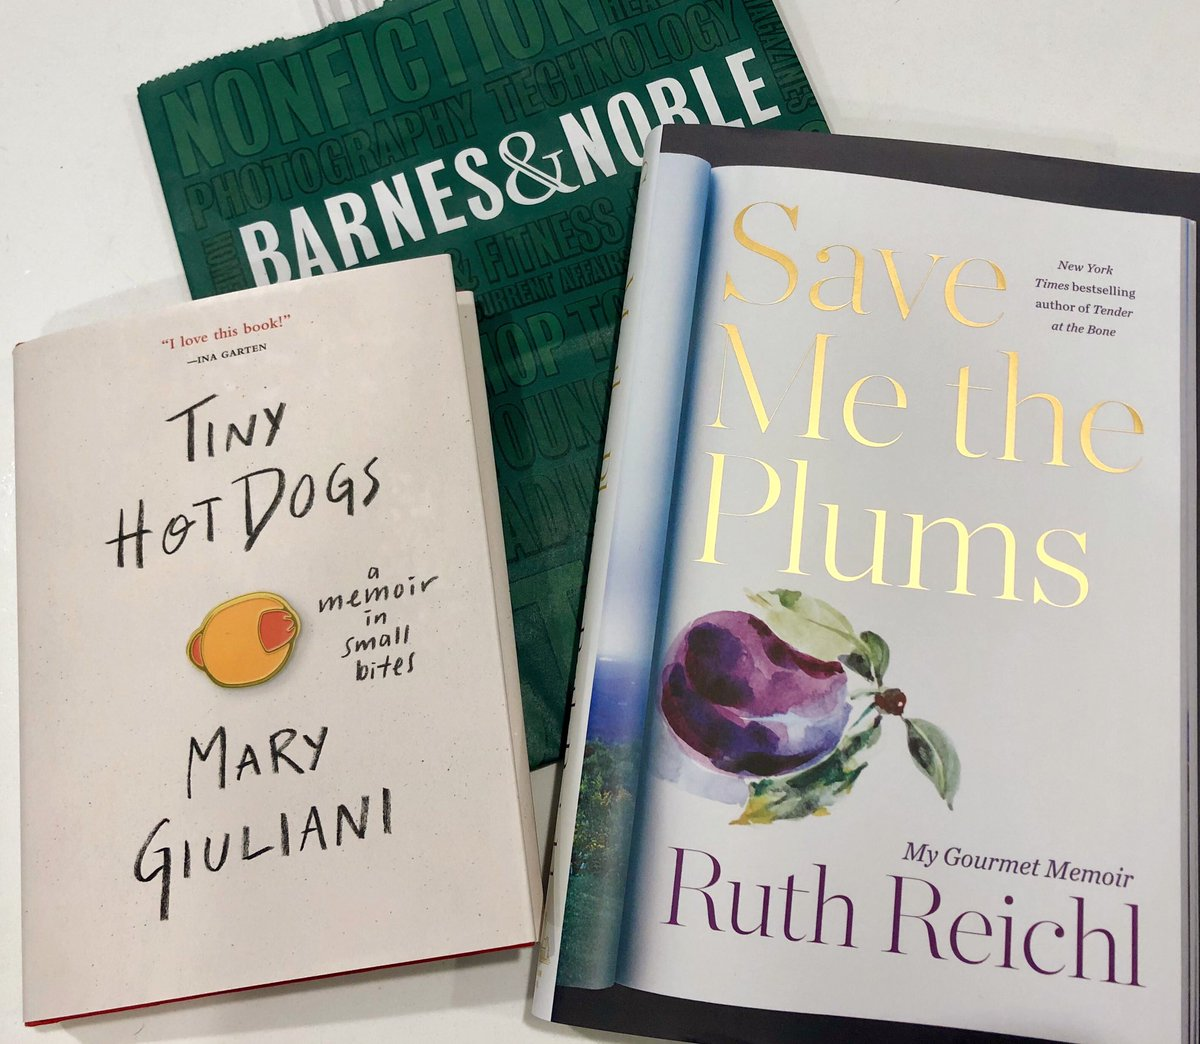 Can't wait to read these two new books!! @ruthreichl @MaryGiuliani @BNBuzz